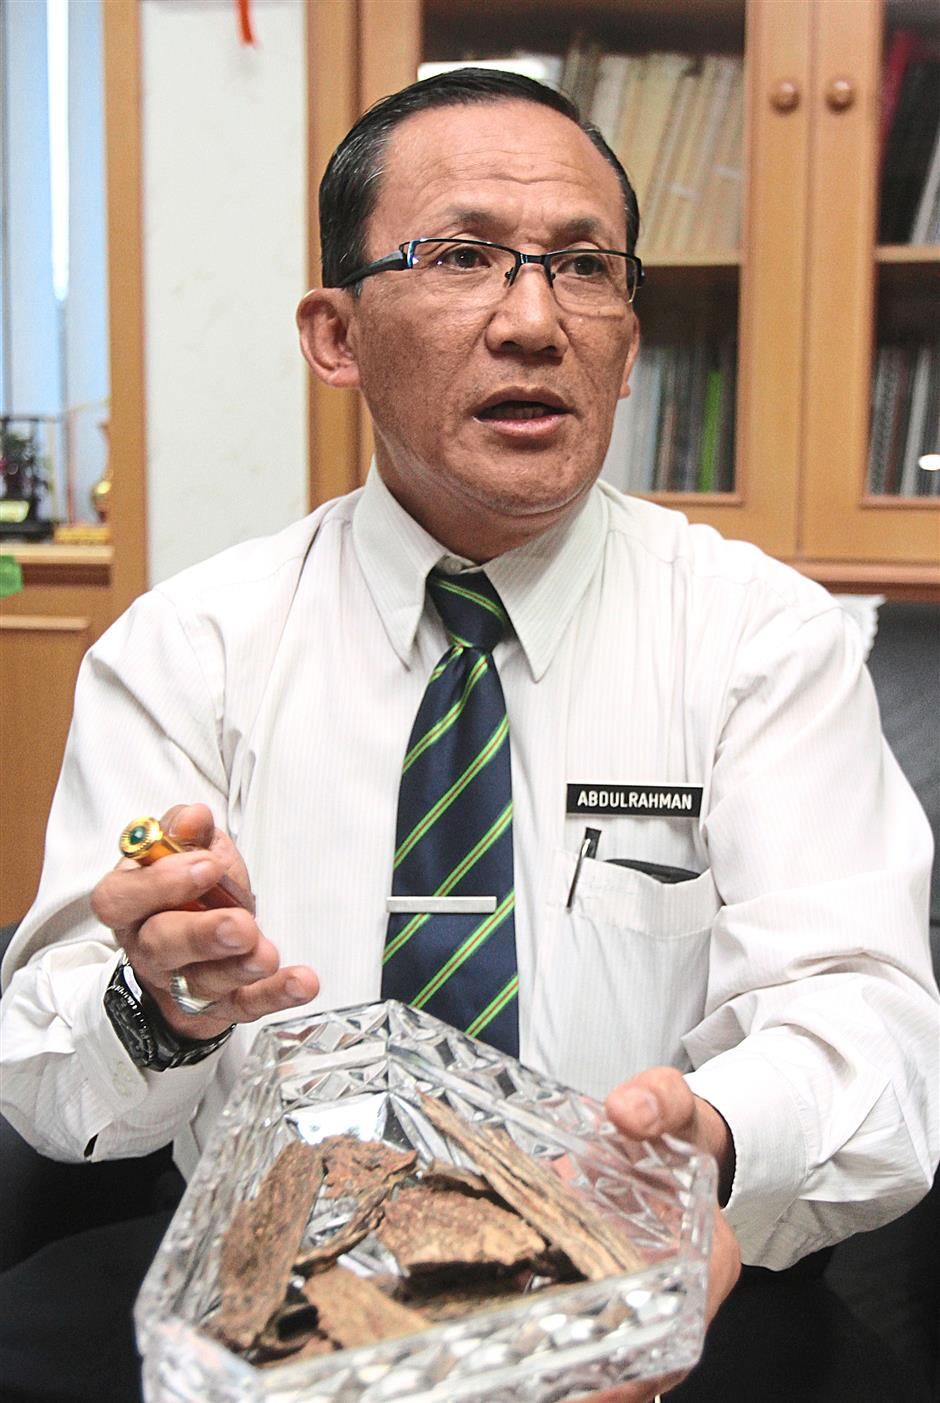 Hefty: Forestry Department of Peninsular Malaysia director-general Datuk Prof Abd Rahman Abd Rahim showing some high quality agarwood wood chips and a bottle of essence oil, which will cost around RM30,000 at the current market price. -- M. Azhar Arif/The Star 6 March 2014